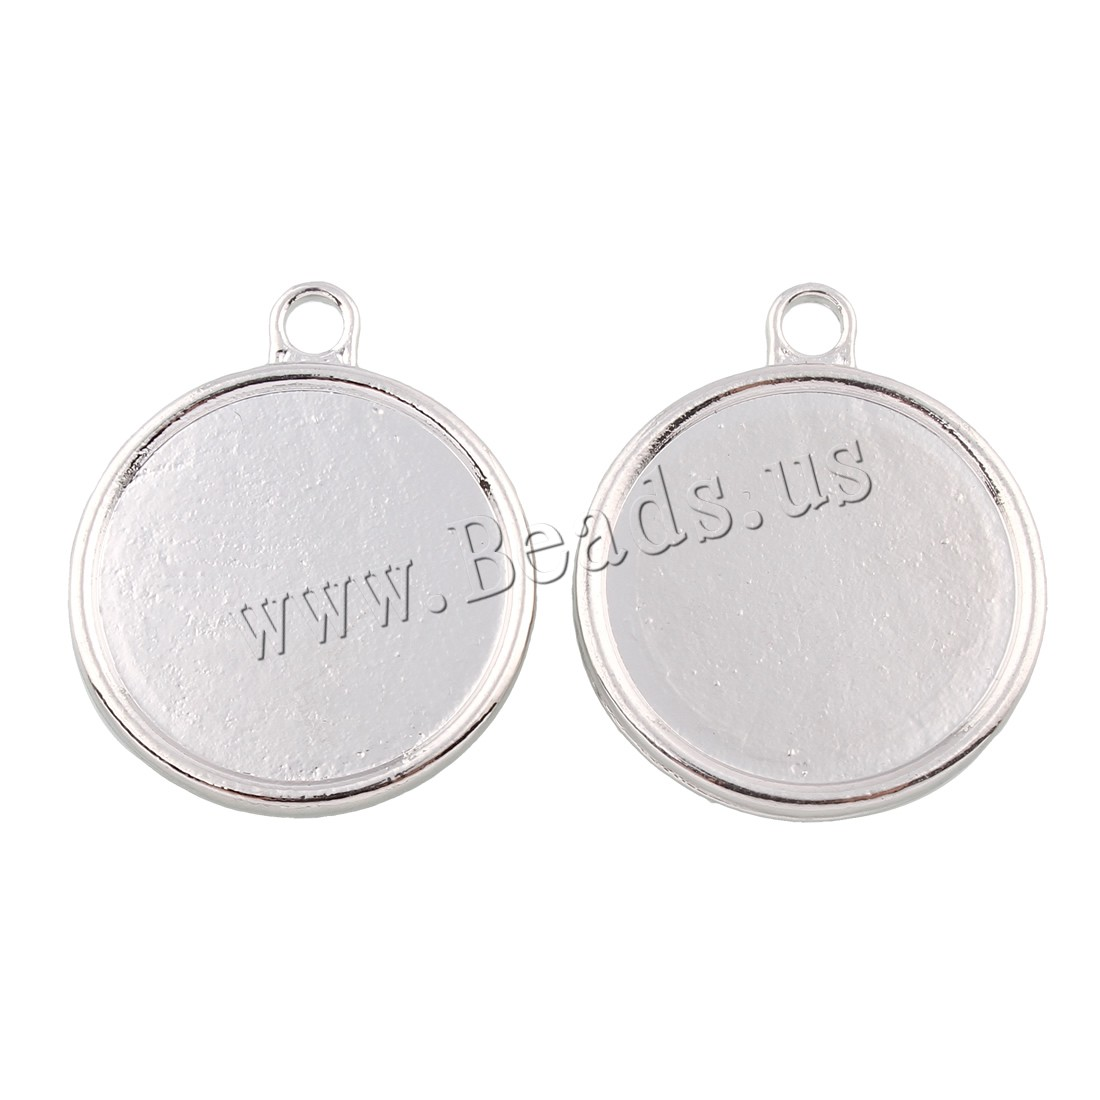 Buy Zinc Alloy Pendant Rhinestone Setting Flat Round platinum color plated double-sided lead & cadmium free 27x32x2mm Hole:Approx 3mm Inner Diameter:Approx 32mm 10PCs/Bag Sold Bag